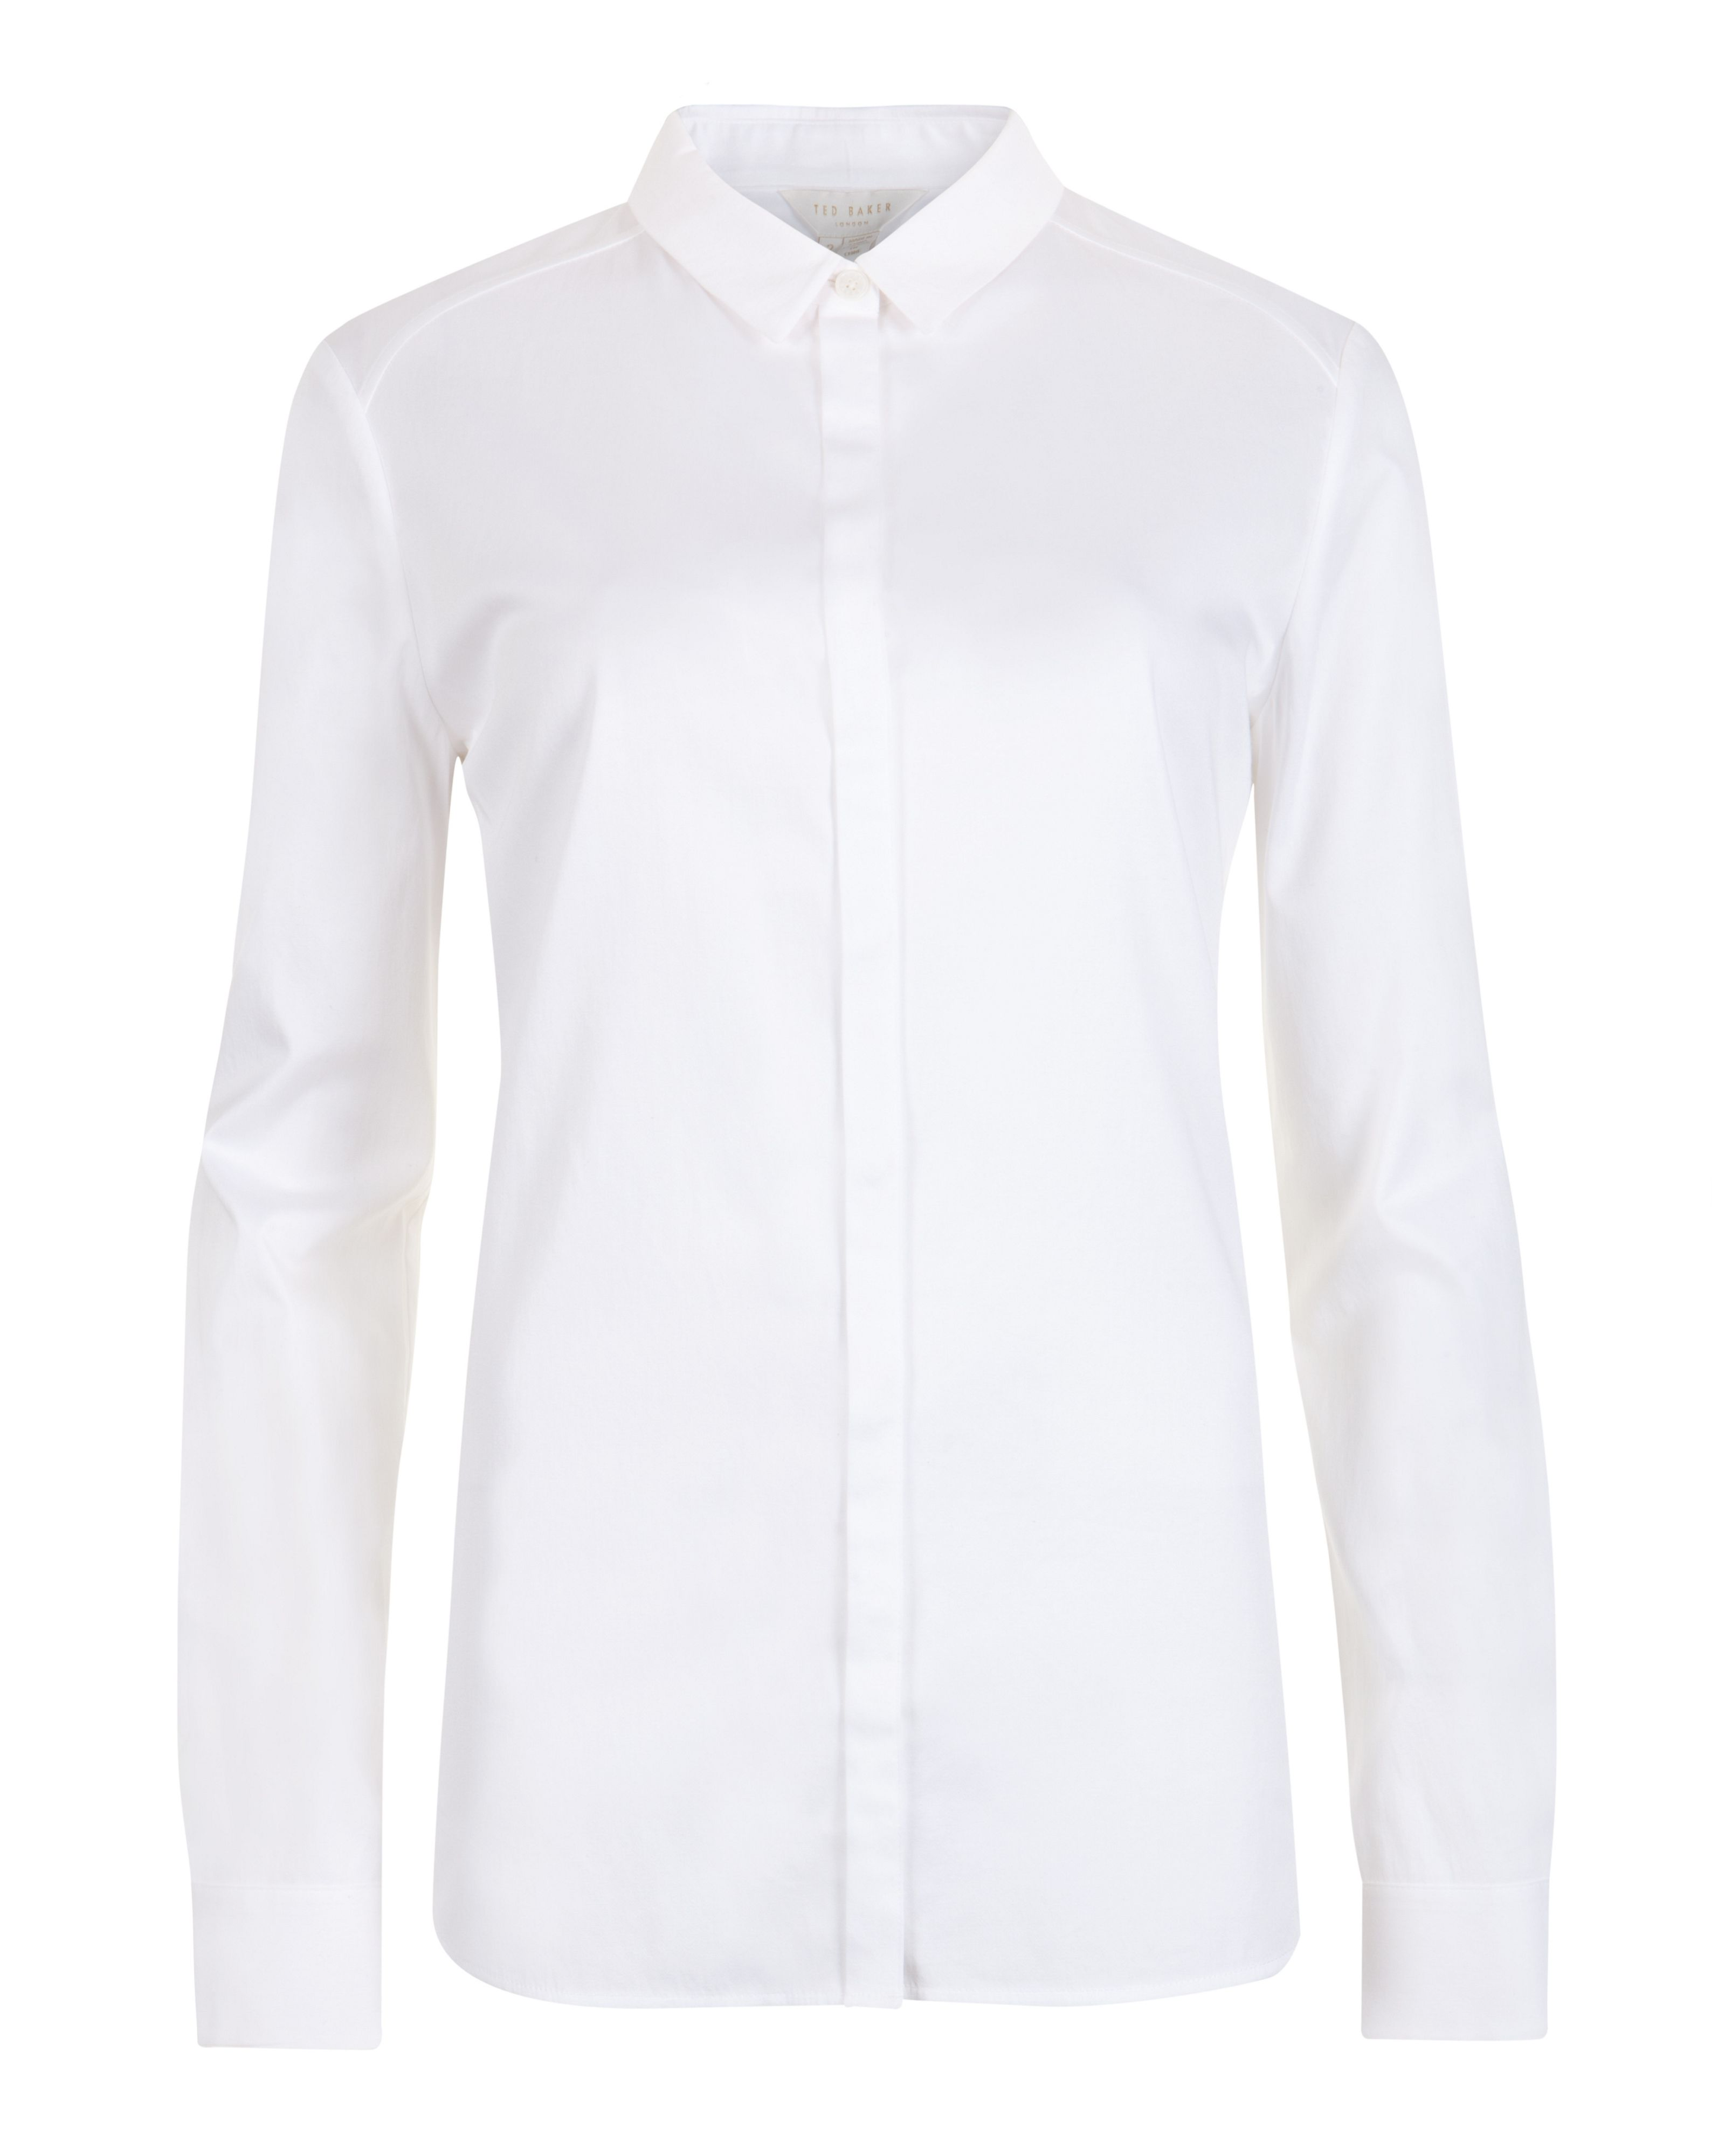 Hadija fitted raglan sleeve shirt